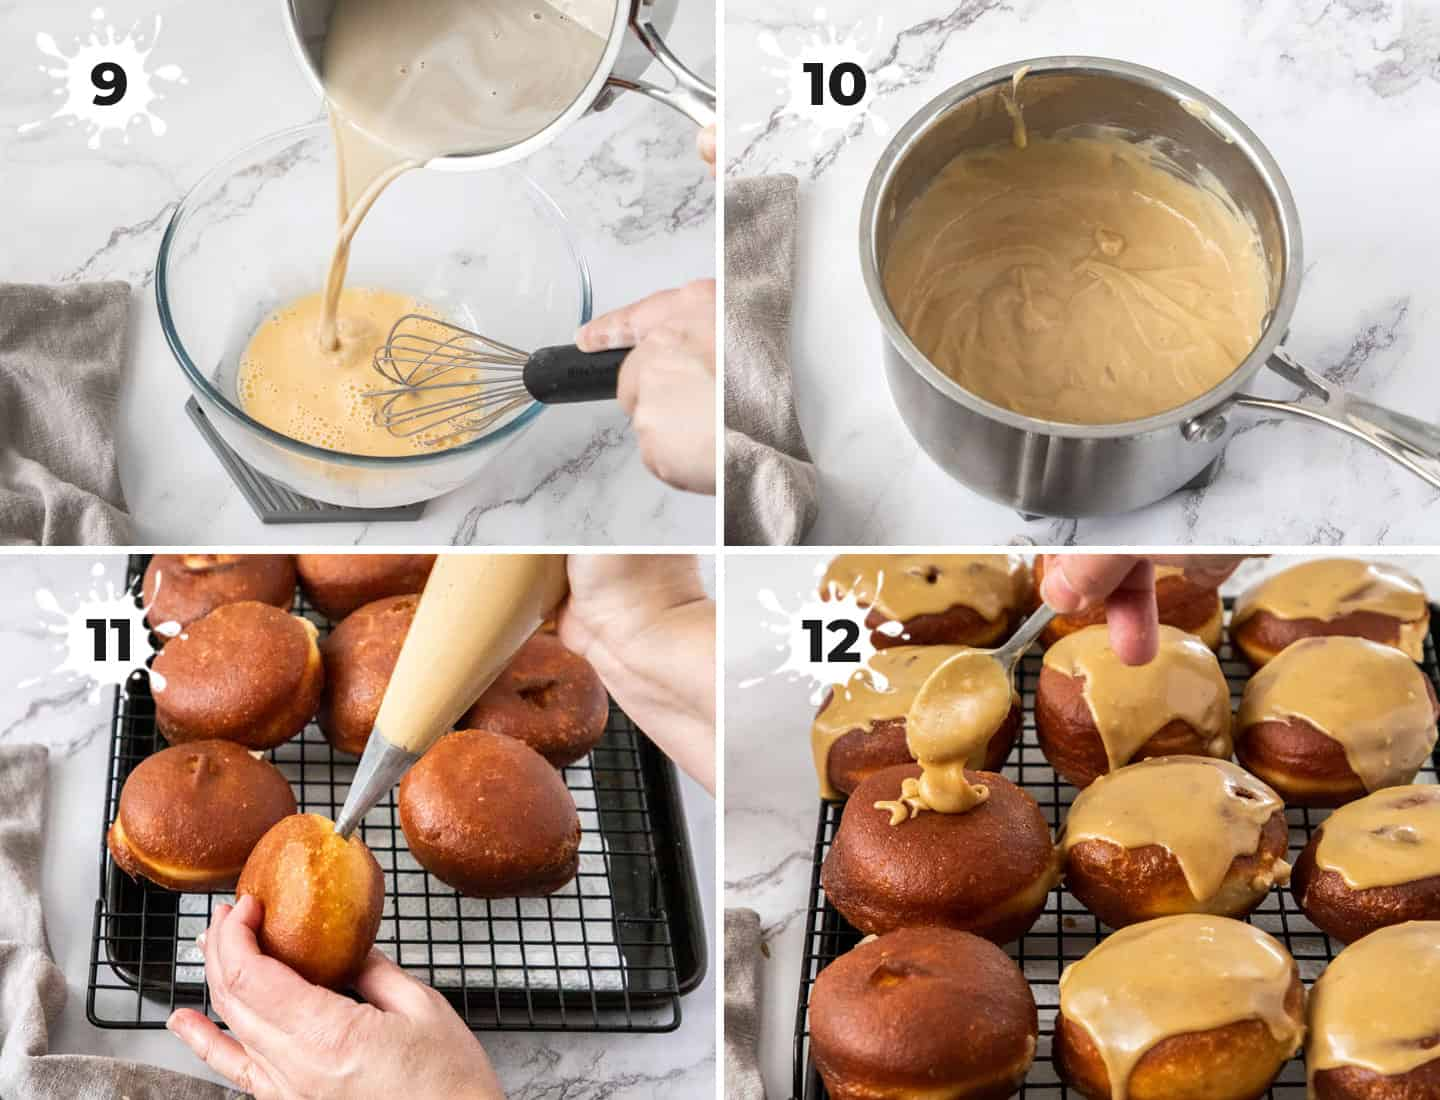 A collage of 4 images showing how to make brown sugar custard.